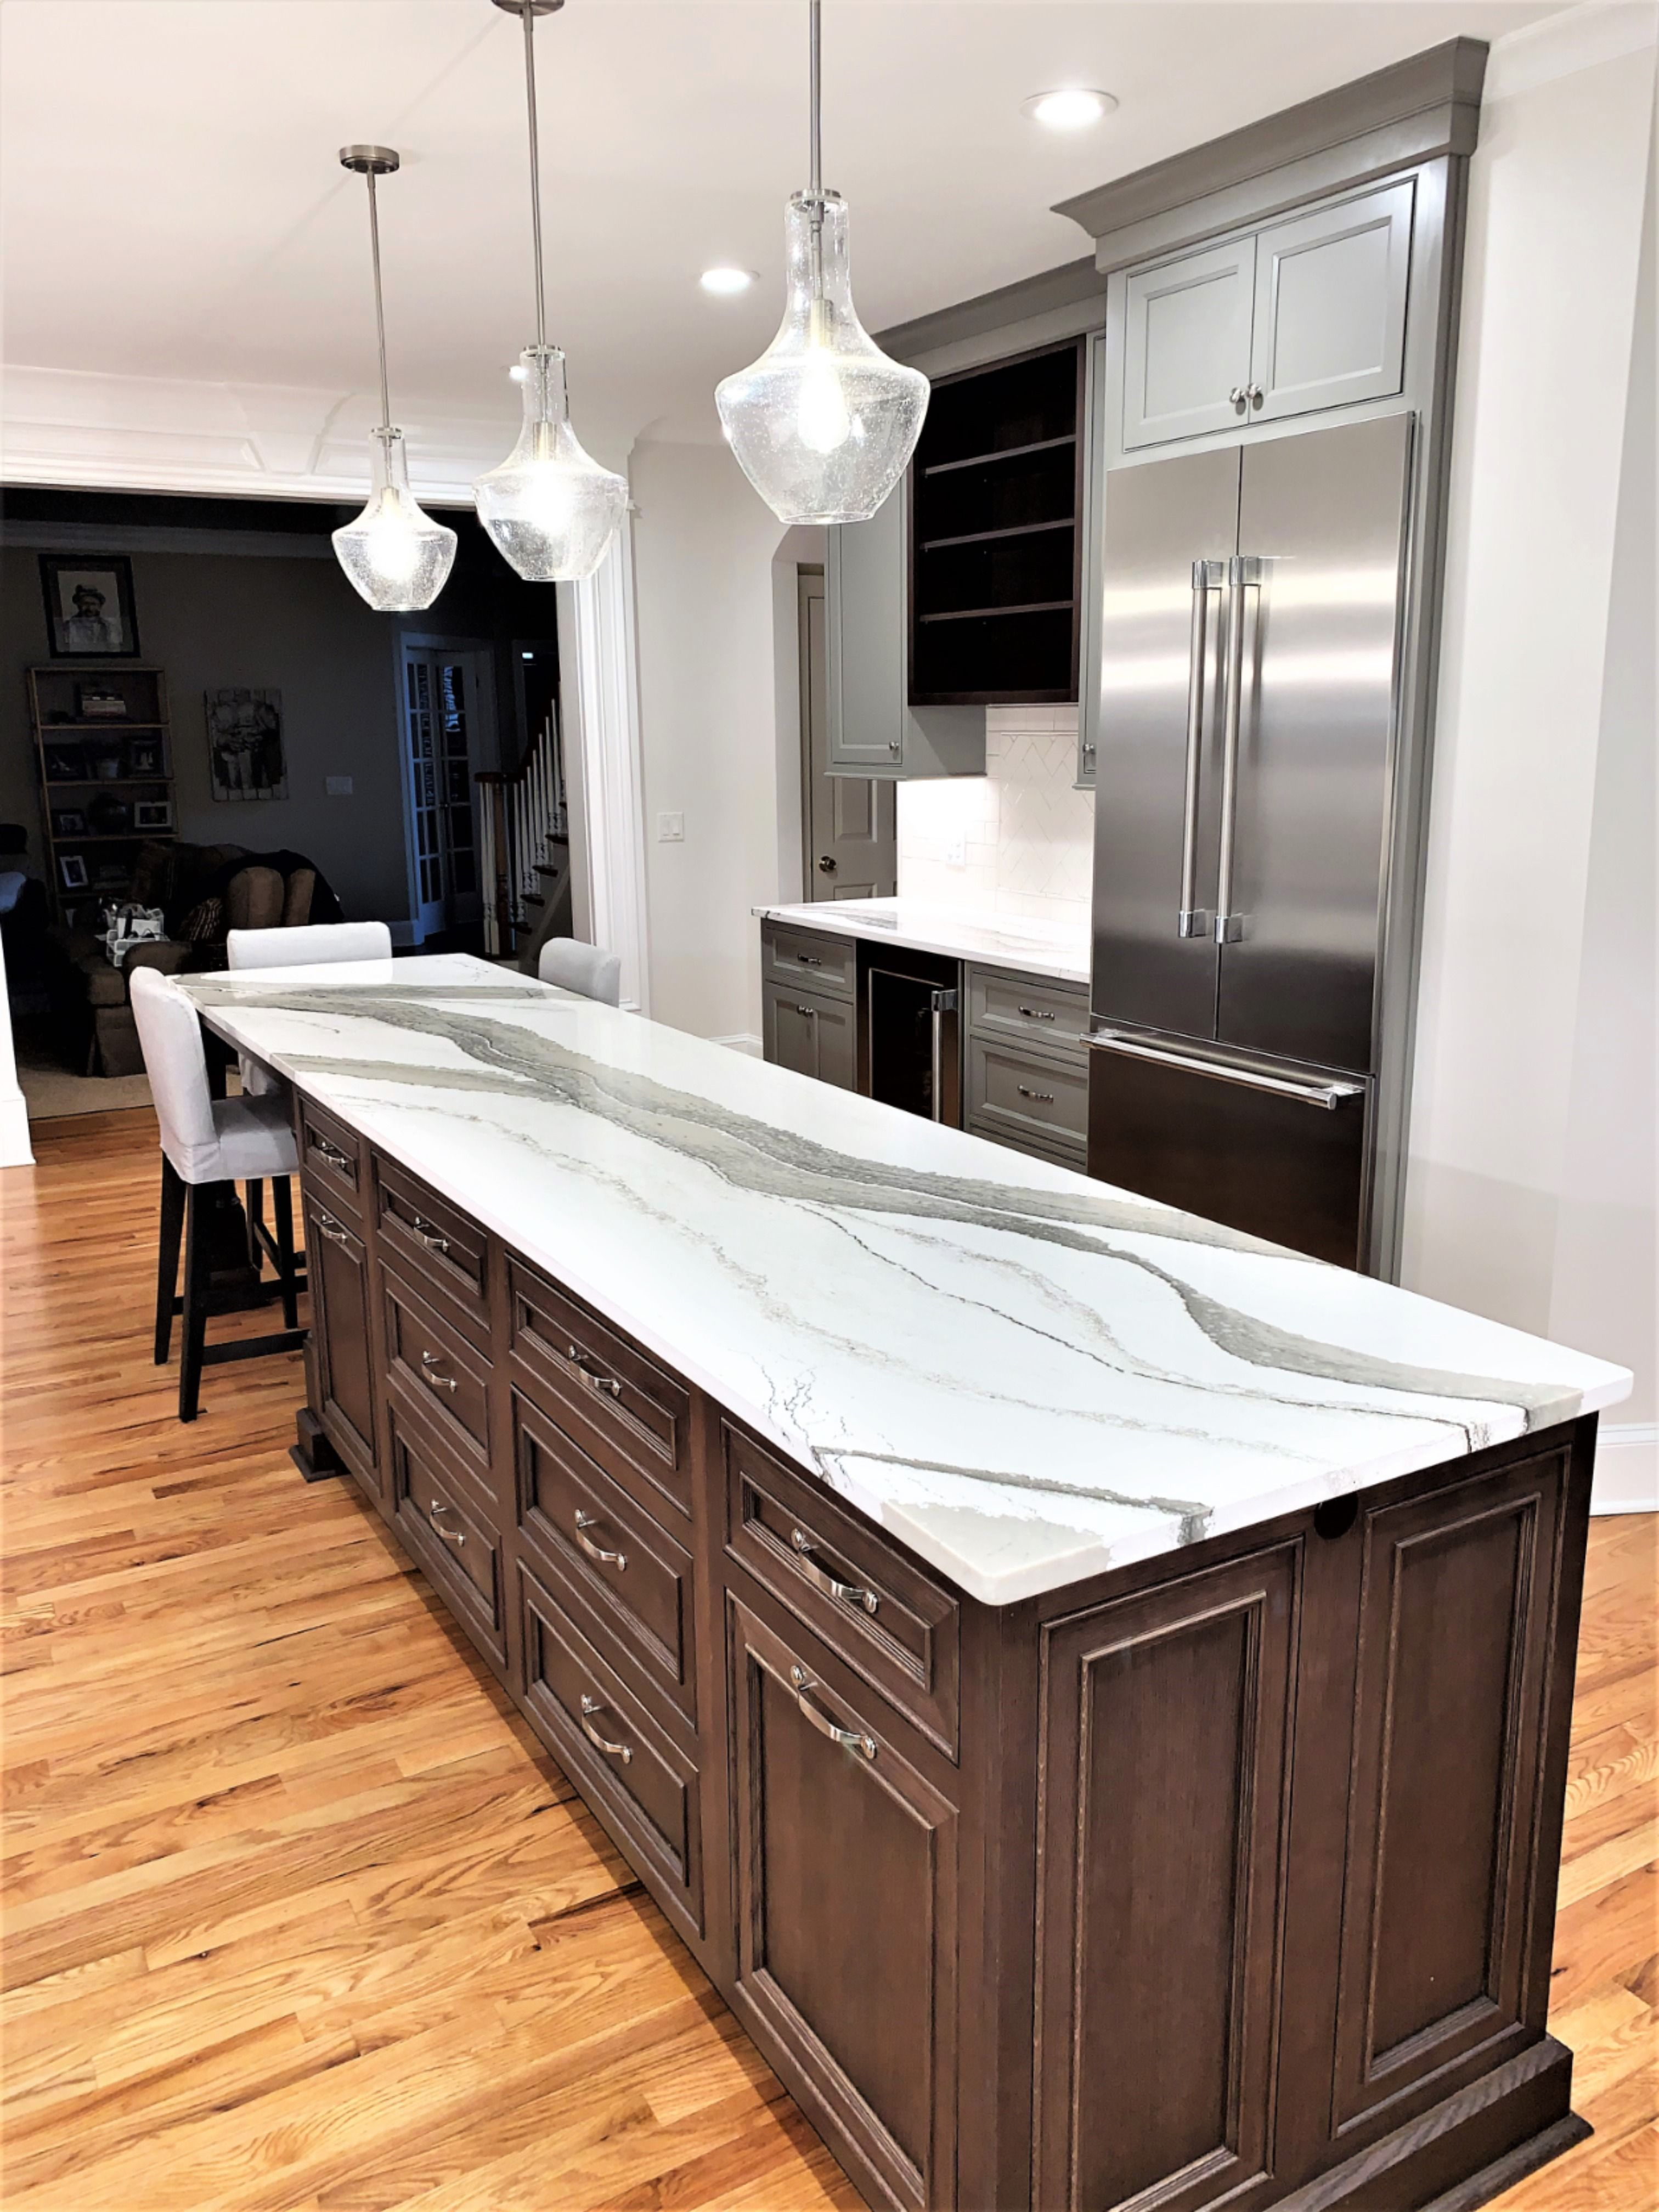 Extra Long Kitchen Island Dining Room Design Kitchen Remodel Small Kitchen Design Small